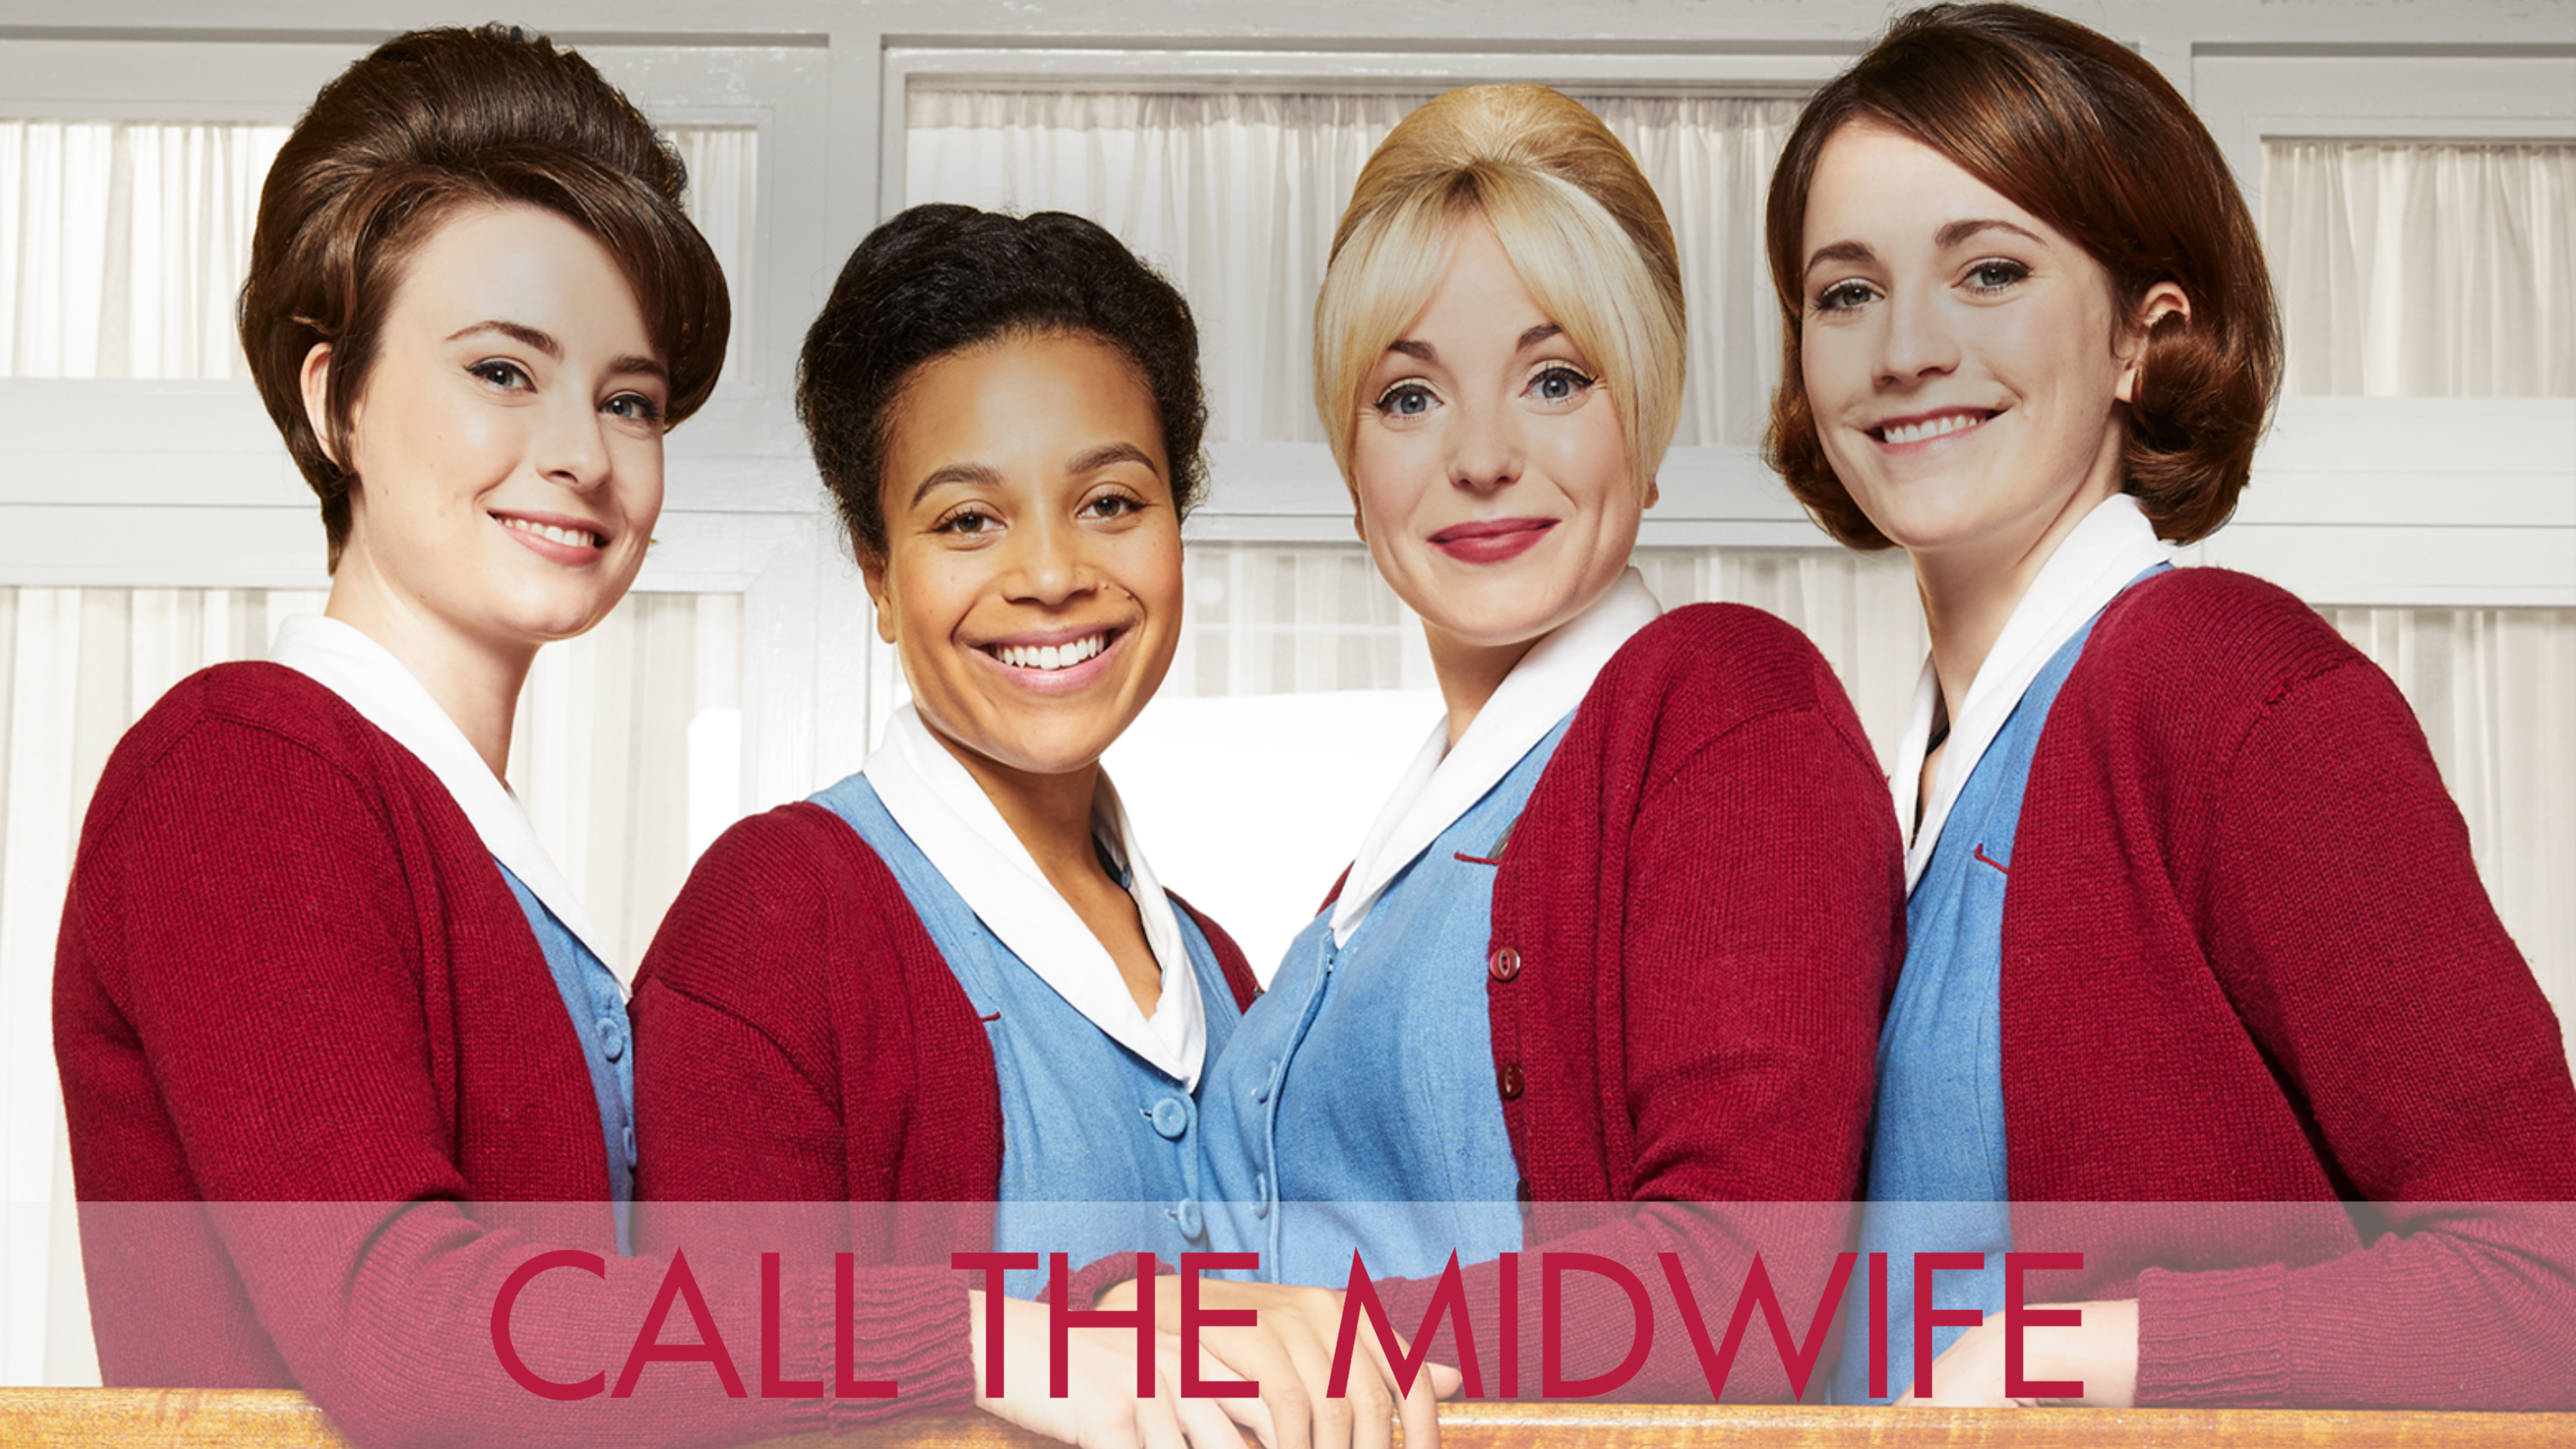 Call The Midwife S7 - SONY CHANNEL